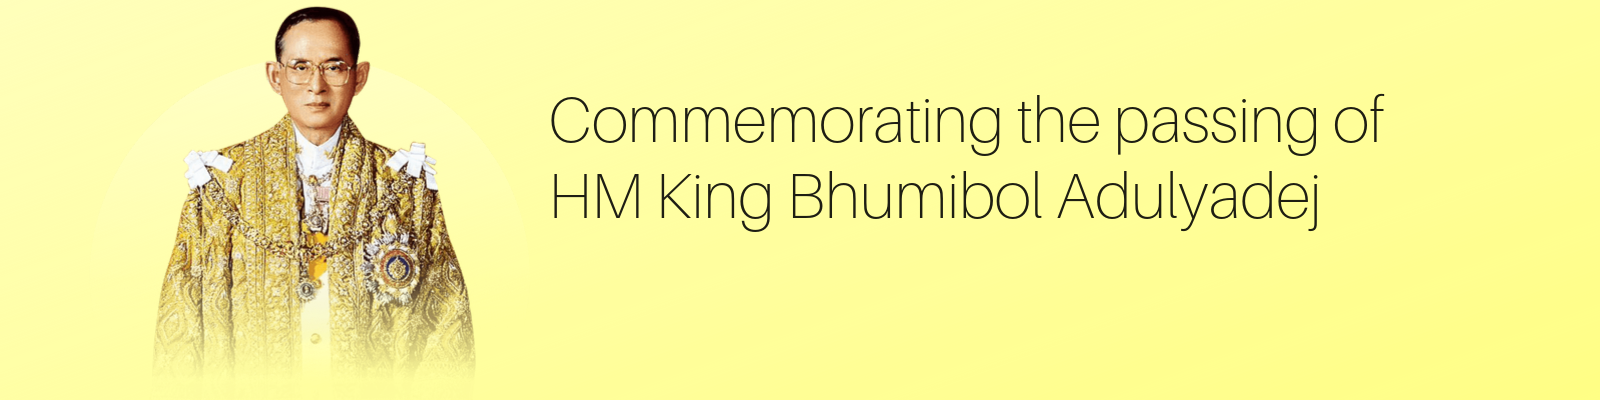 Commemorating the passing of King